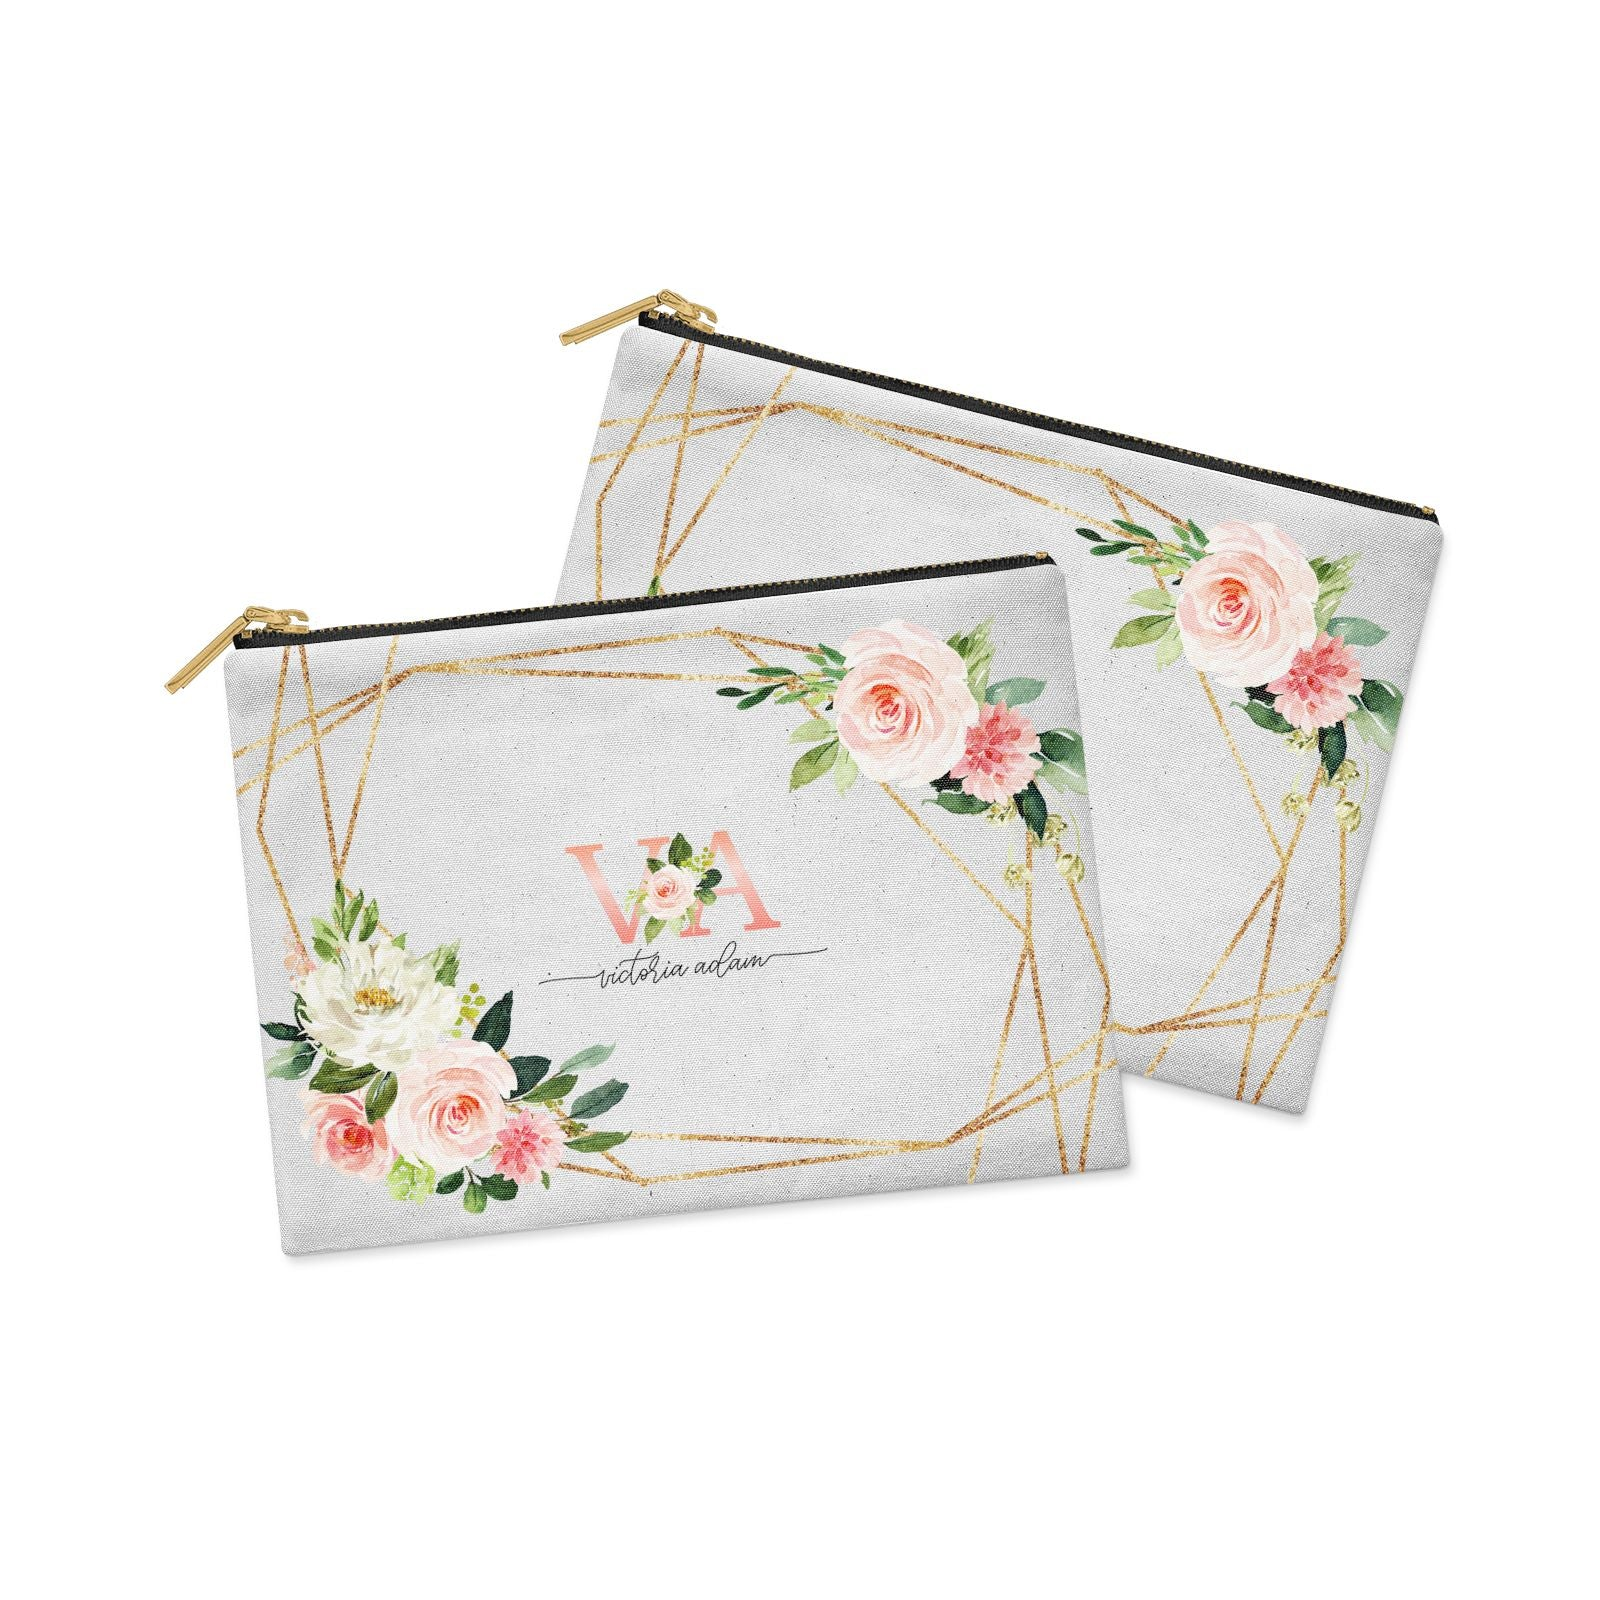 Blush Pink Rose Floral Personalised Clutch Bag Zipper Pouch Alternative View